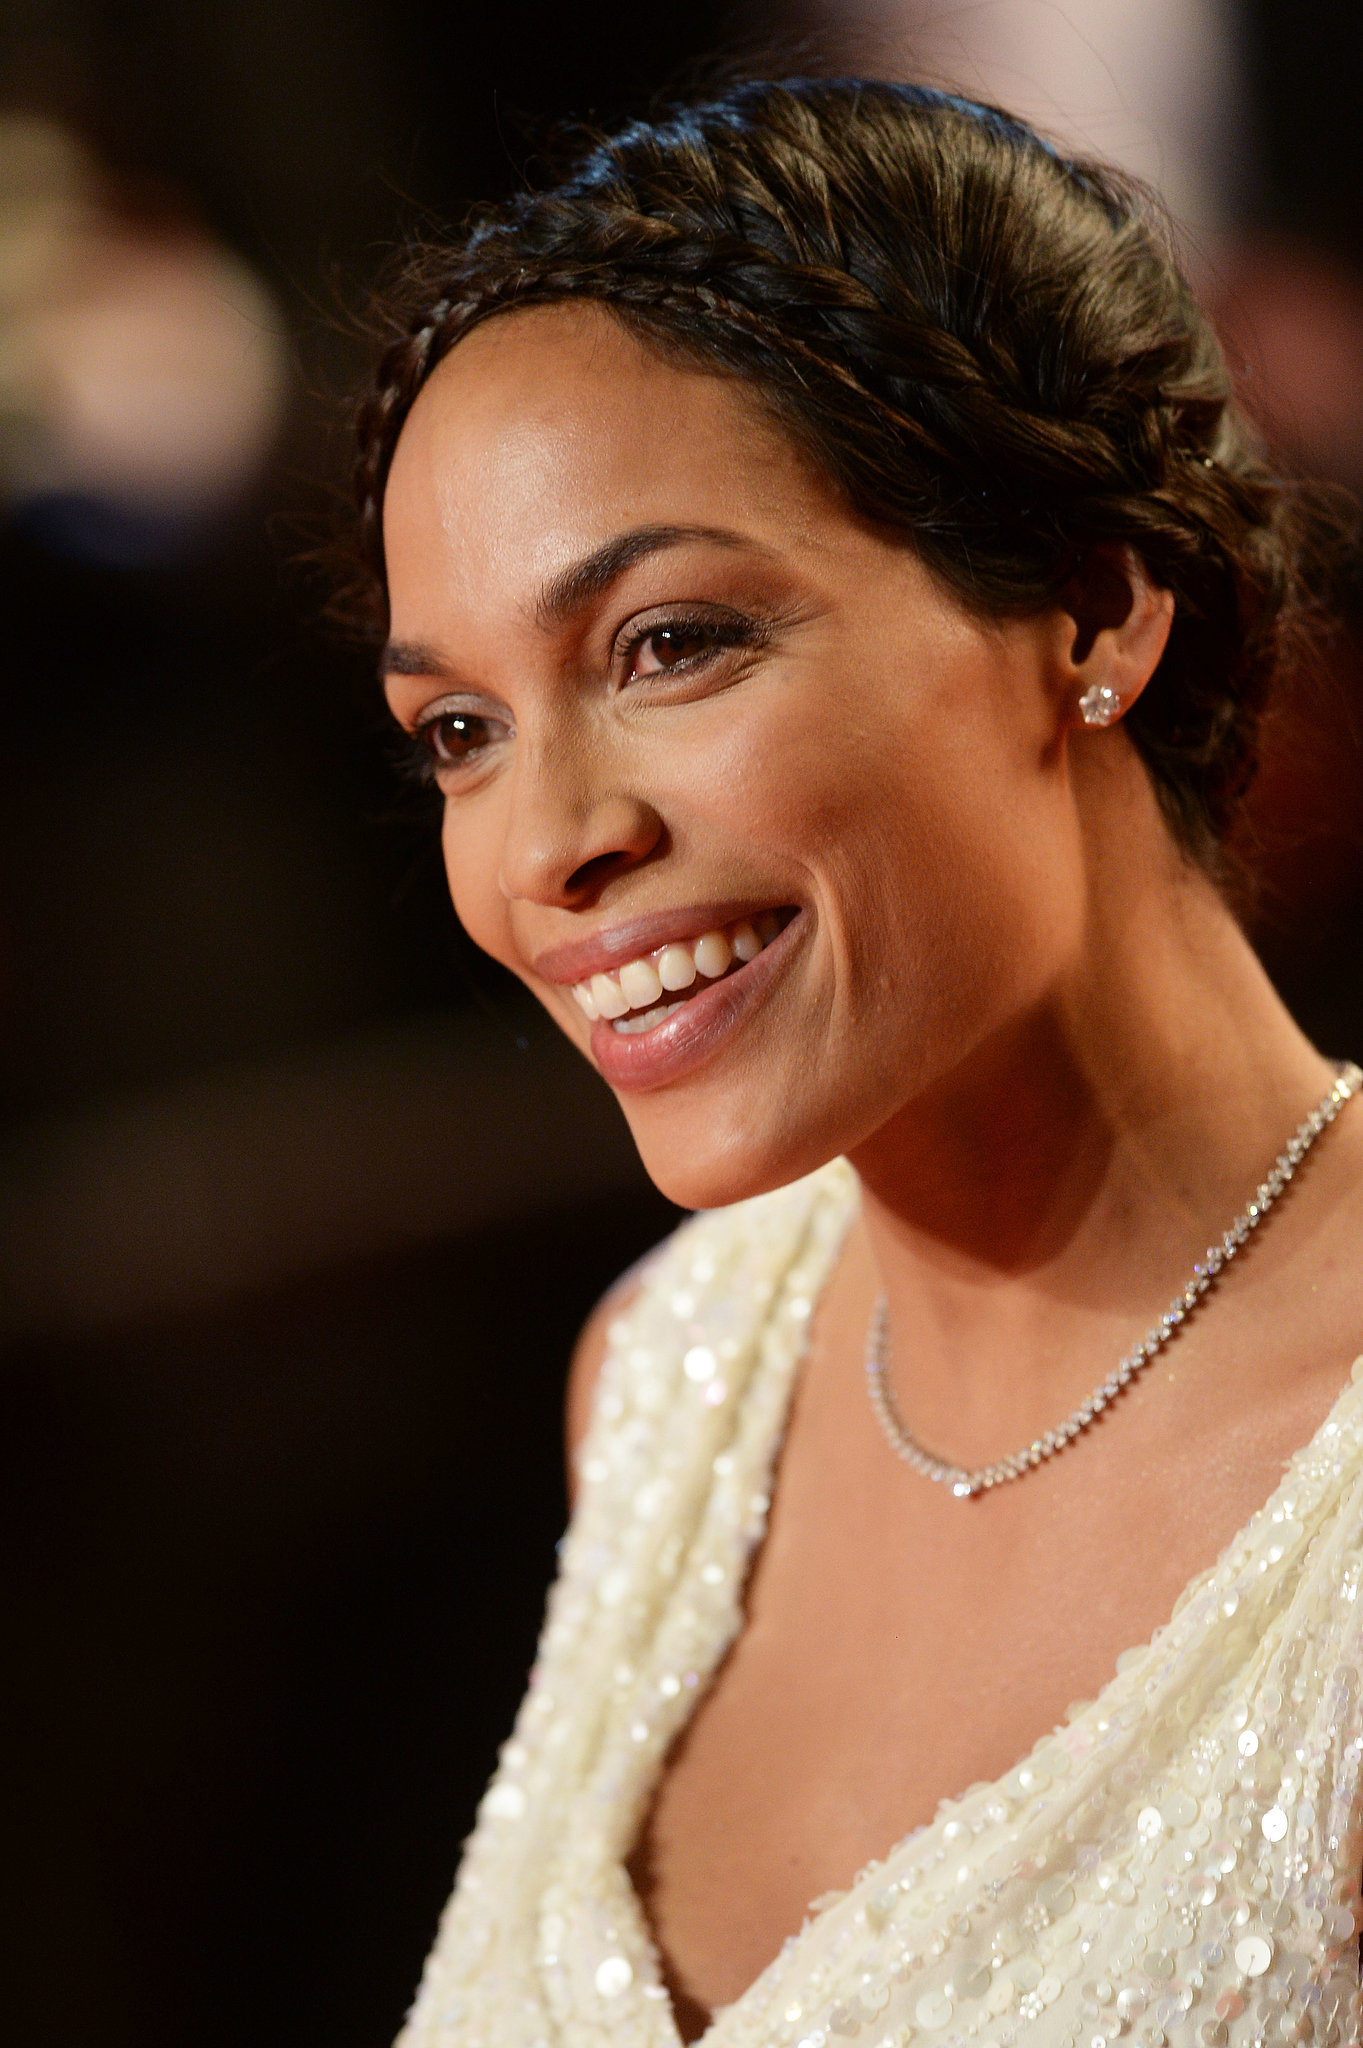 At the premiere of As I Lay Dying at the Cannes Film Festival, Rosario Dawson stunned with a delicate crown of braids.